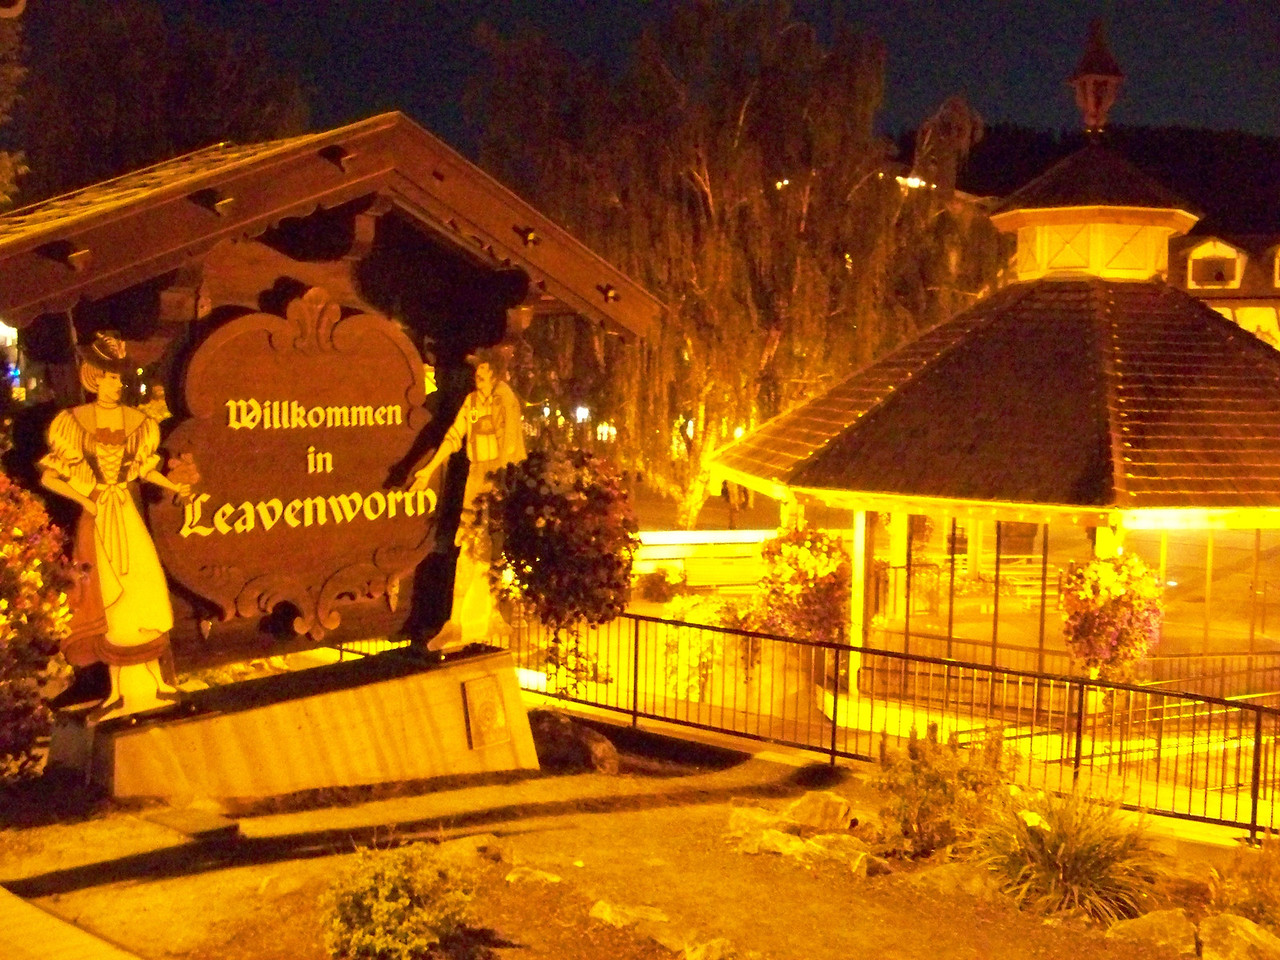 After the show, we walked from our hotel back to the central part of town.  Everything was closed, so we didn't stay long.  The welcome sign here can be seen from Highway 2.  On the right is the little park's gazebo again.<br /> [Leavenworth, WA]